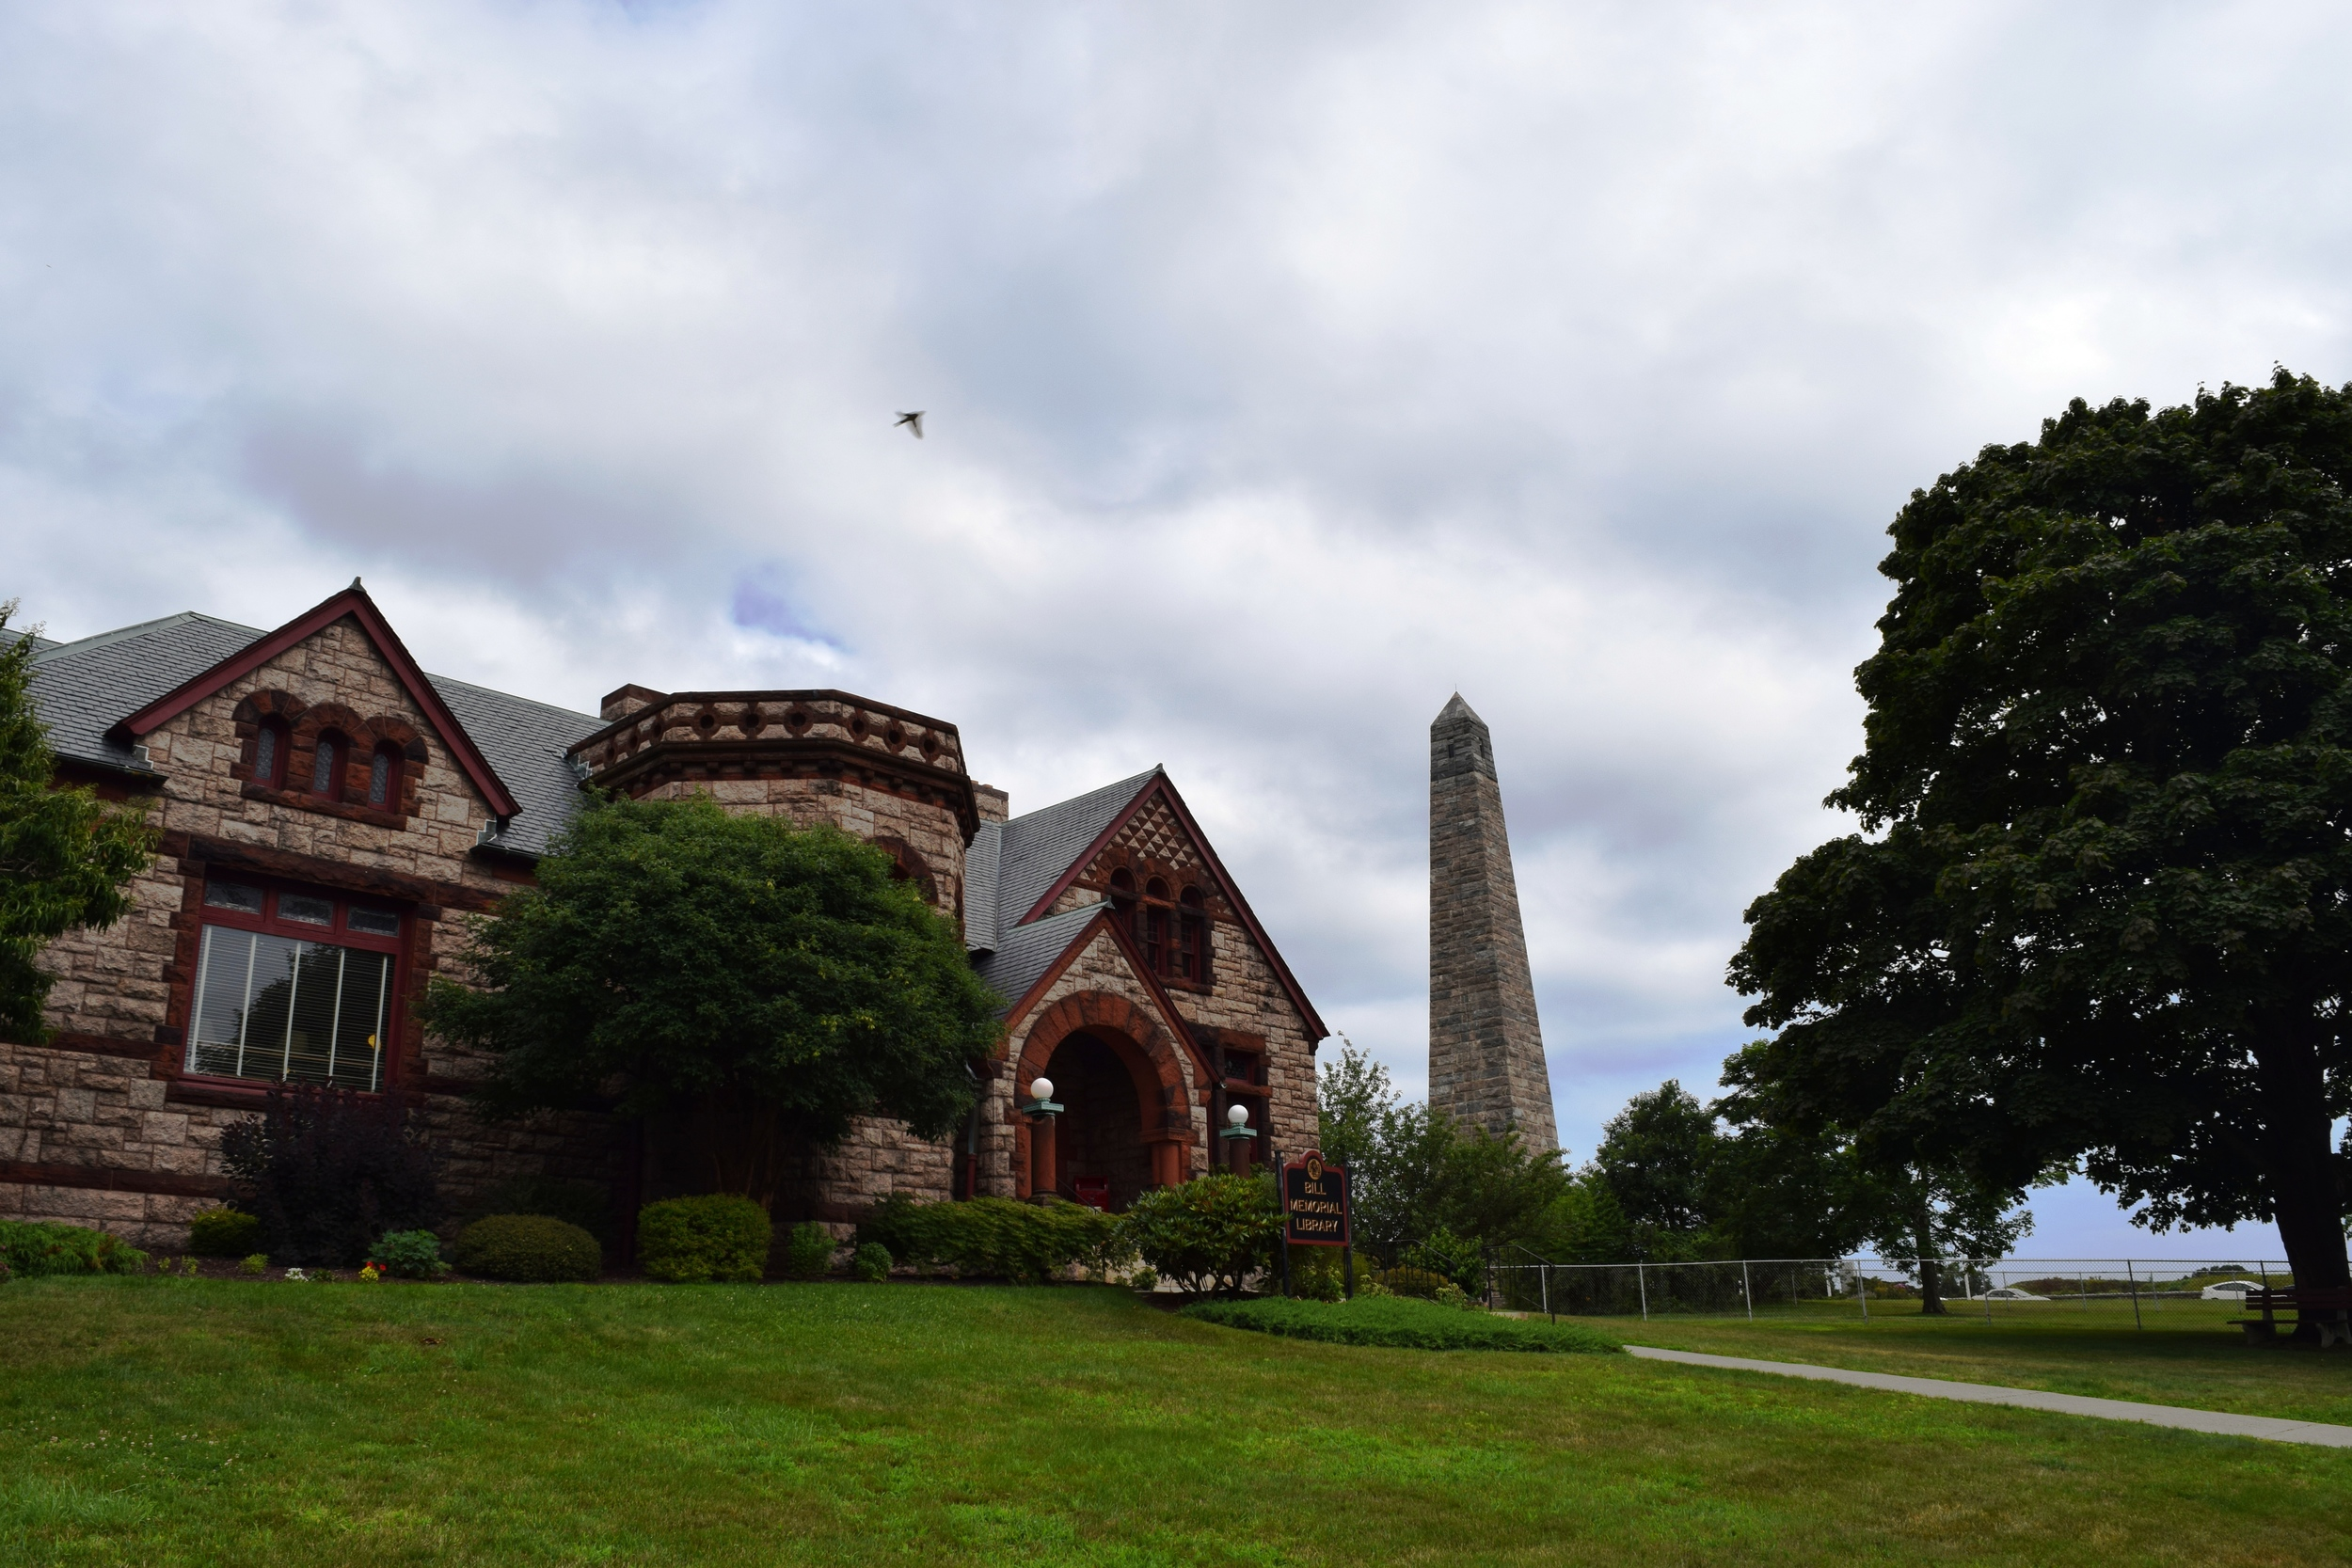 Bill Memorial Library and the Groton Heights monument.